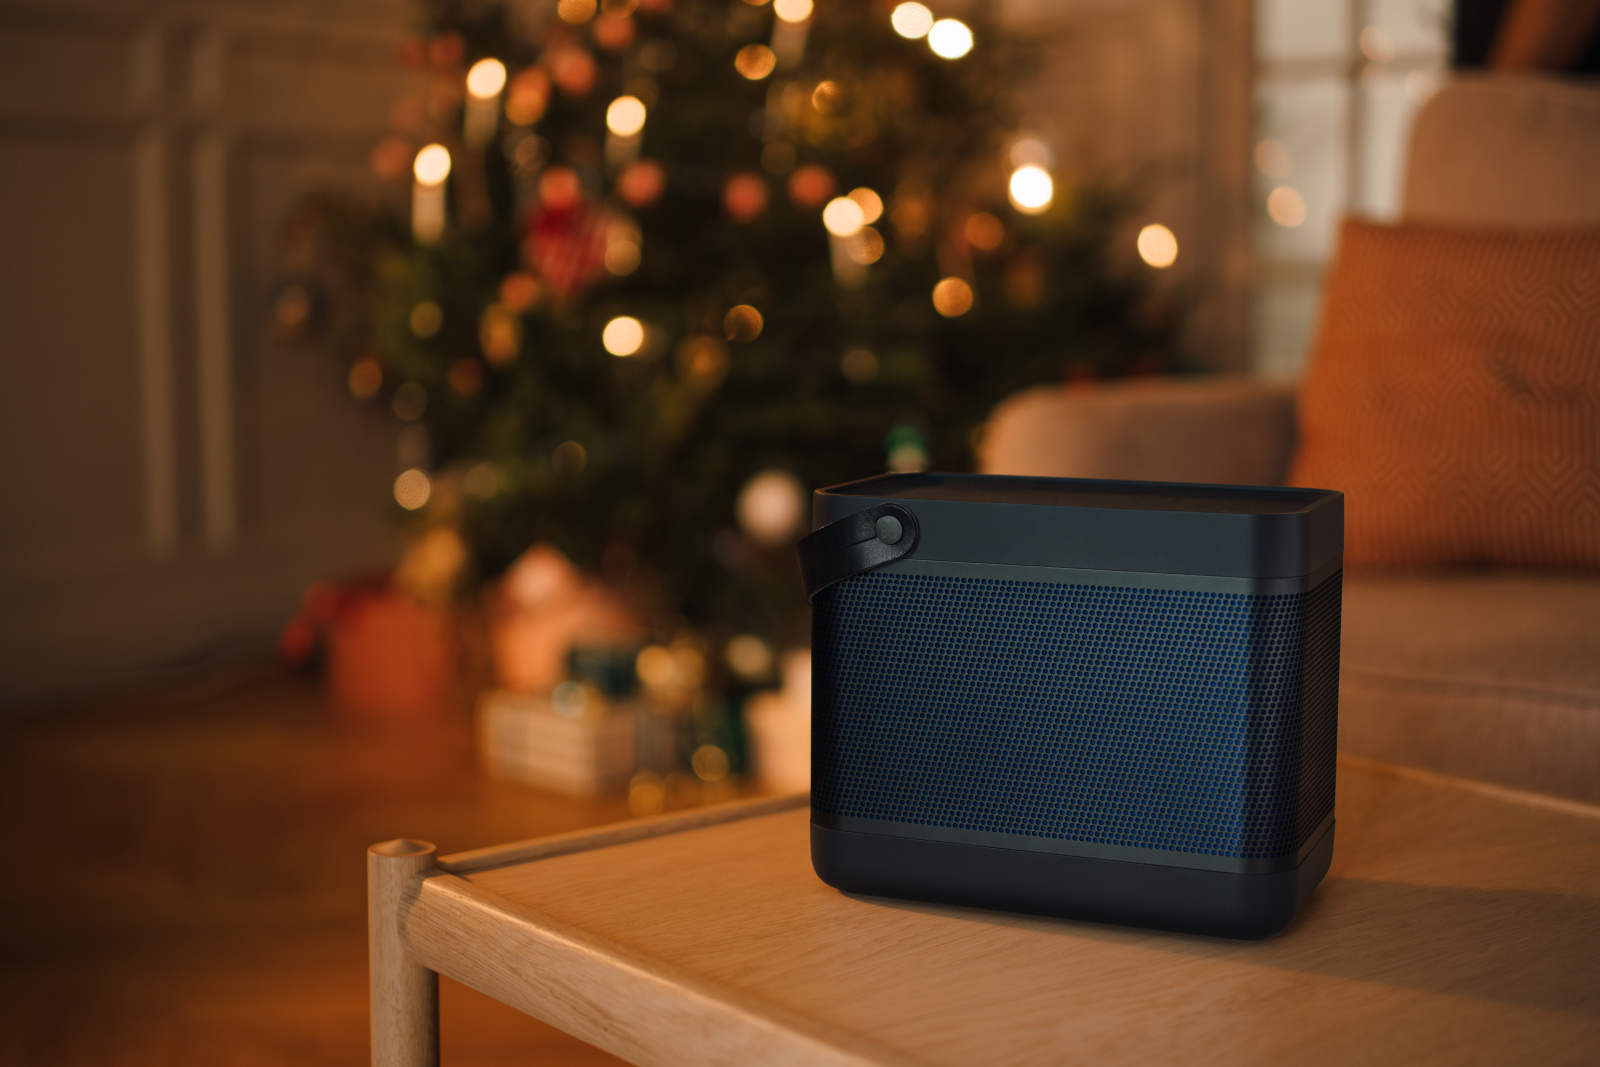 We Will Party With Bang & Olufsen's Beolit Bluetooth Speaker This Season